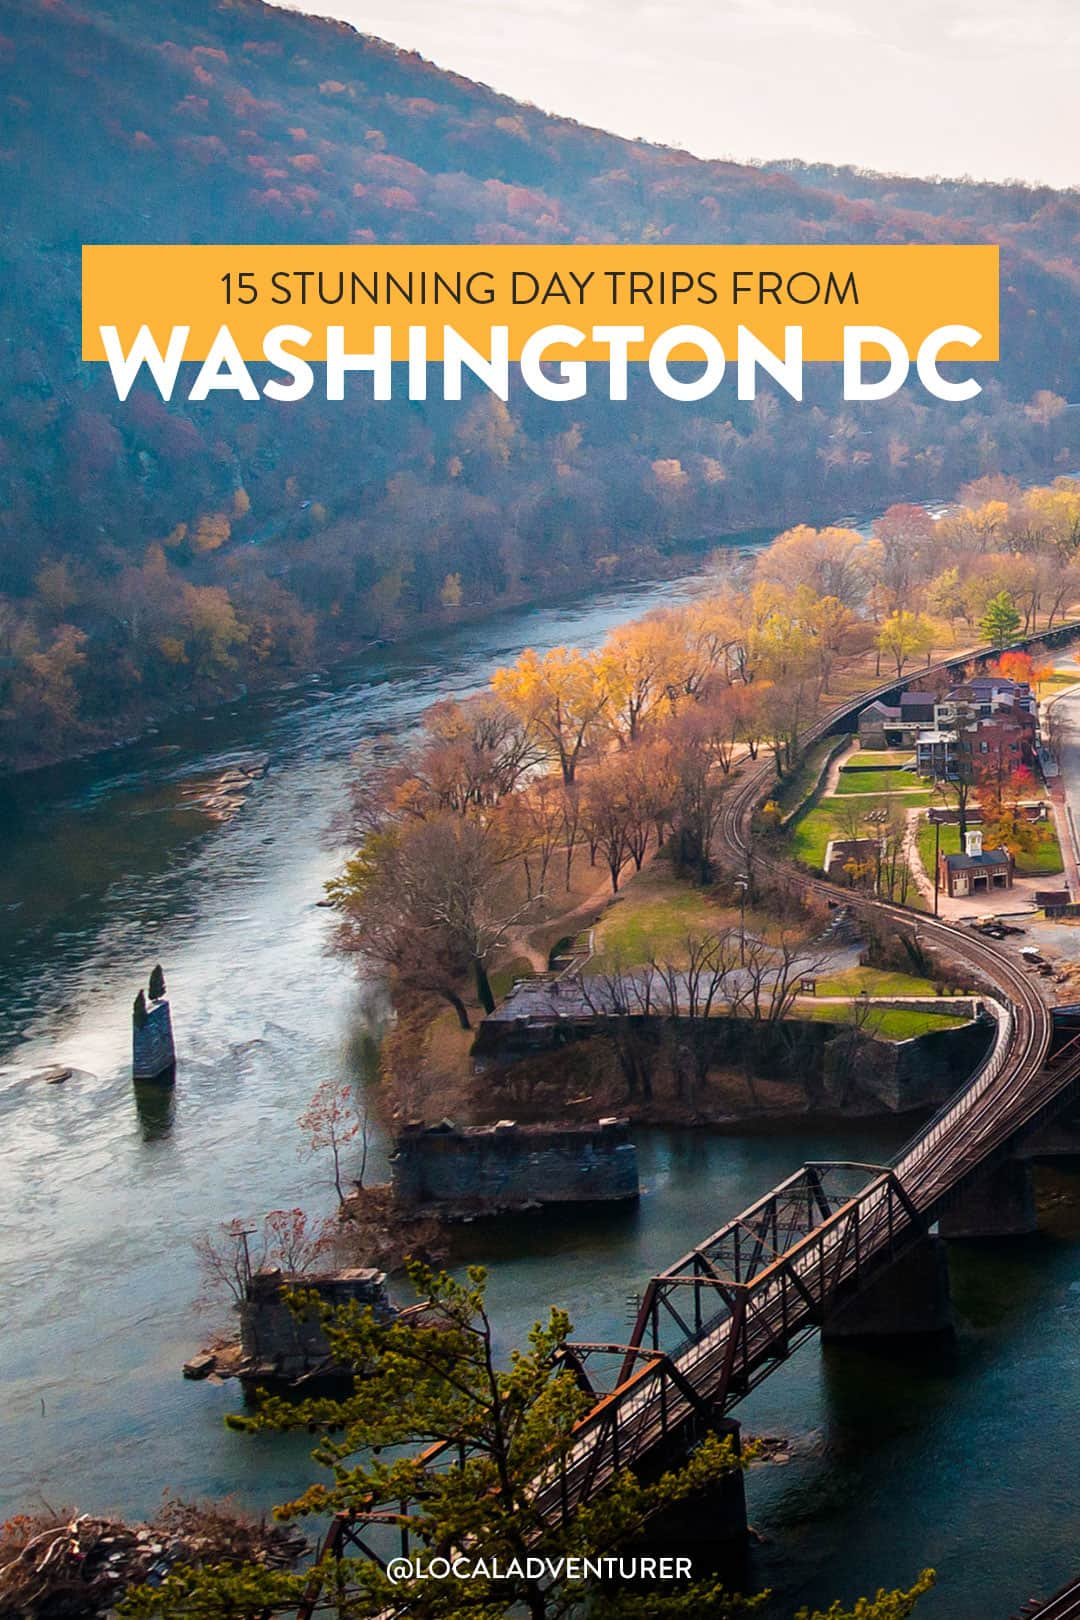 15 Stunning Day Trips from Washington DC